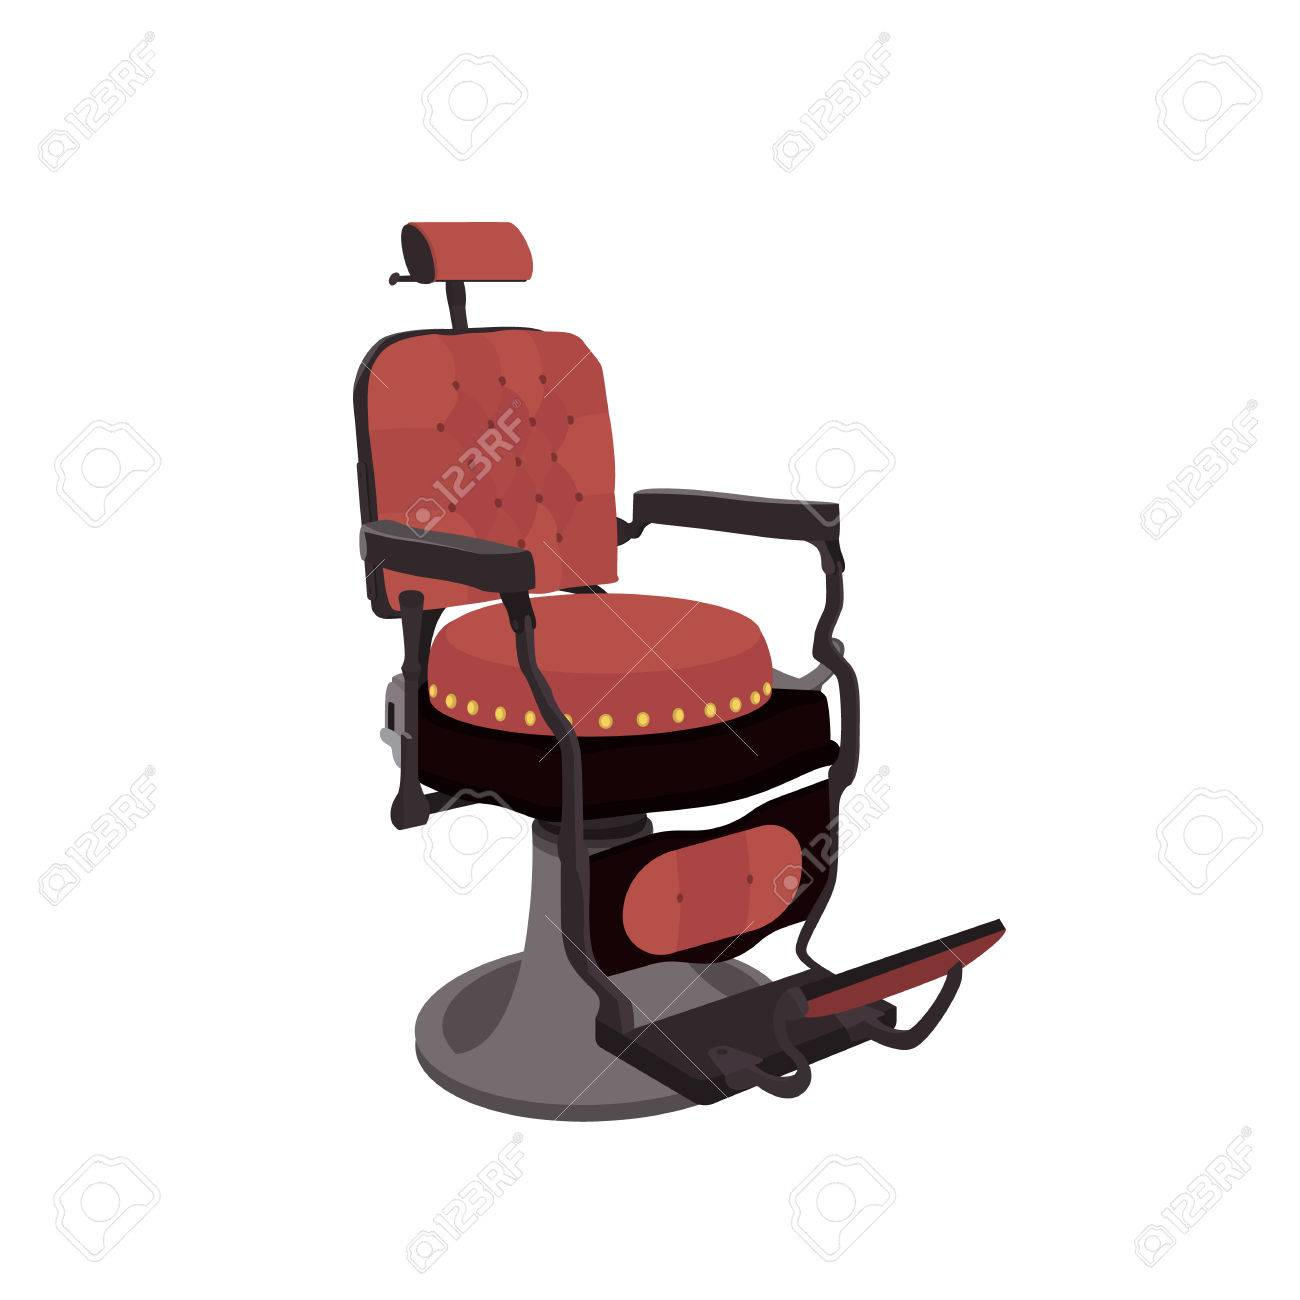 Flat Vector Illustration Of A Vintage Barber Chair Stock